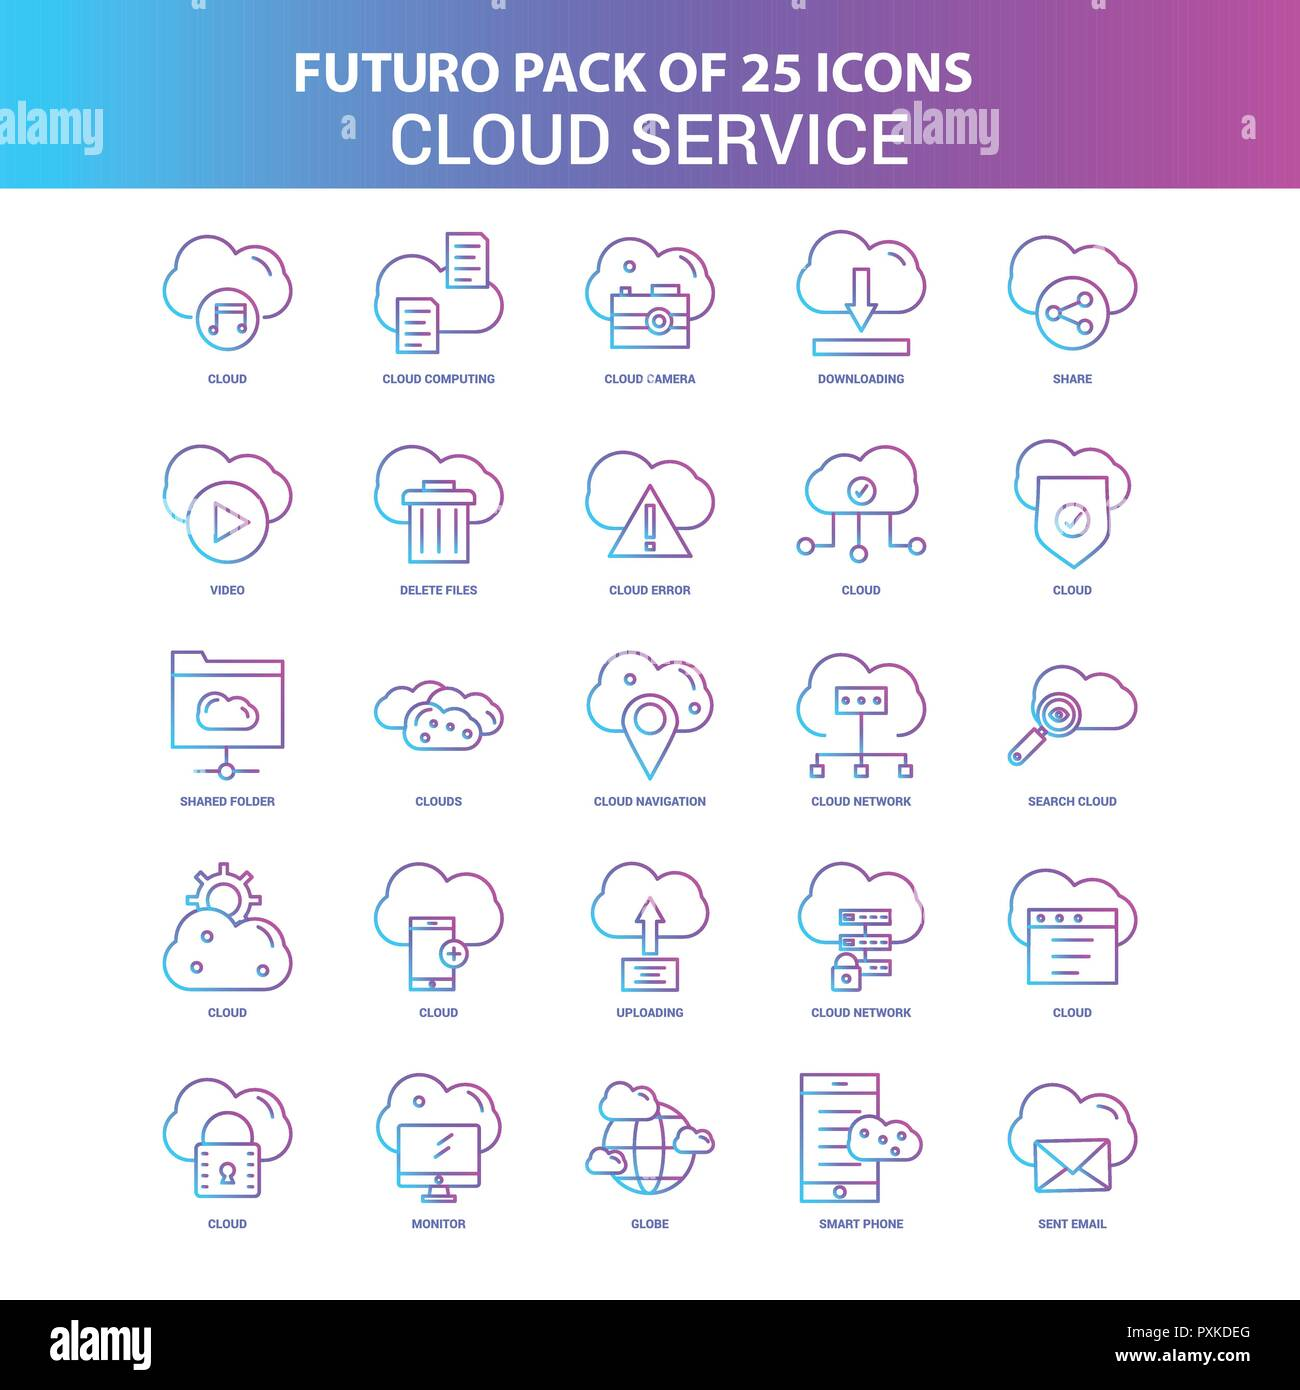 Delete Cloud Stock Photos & Delete Cloud Stock Images - Alamy